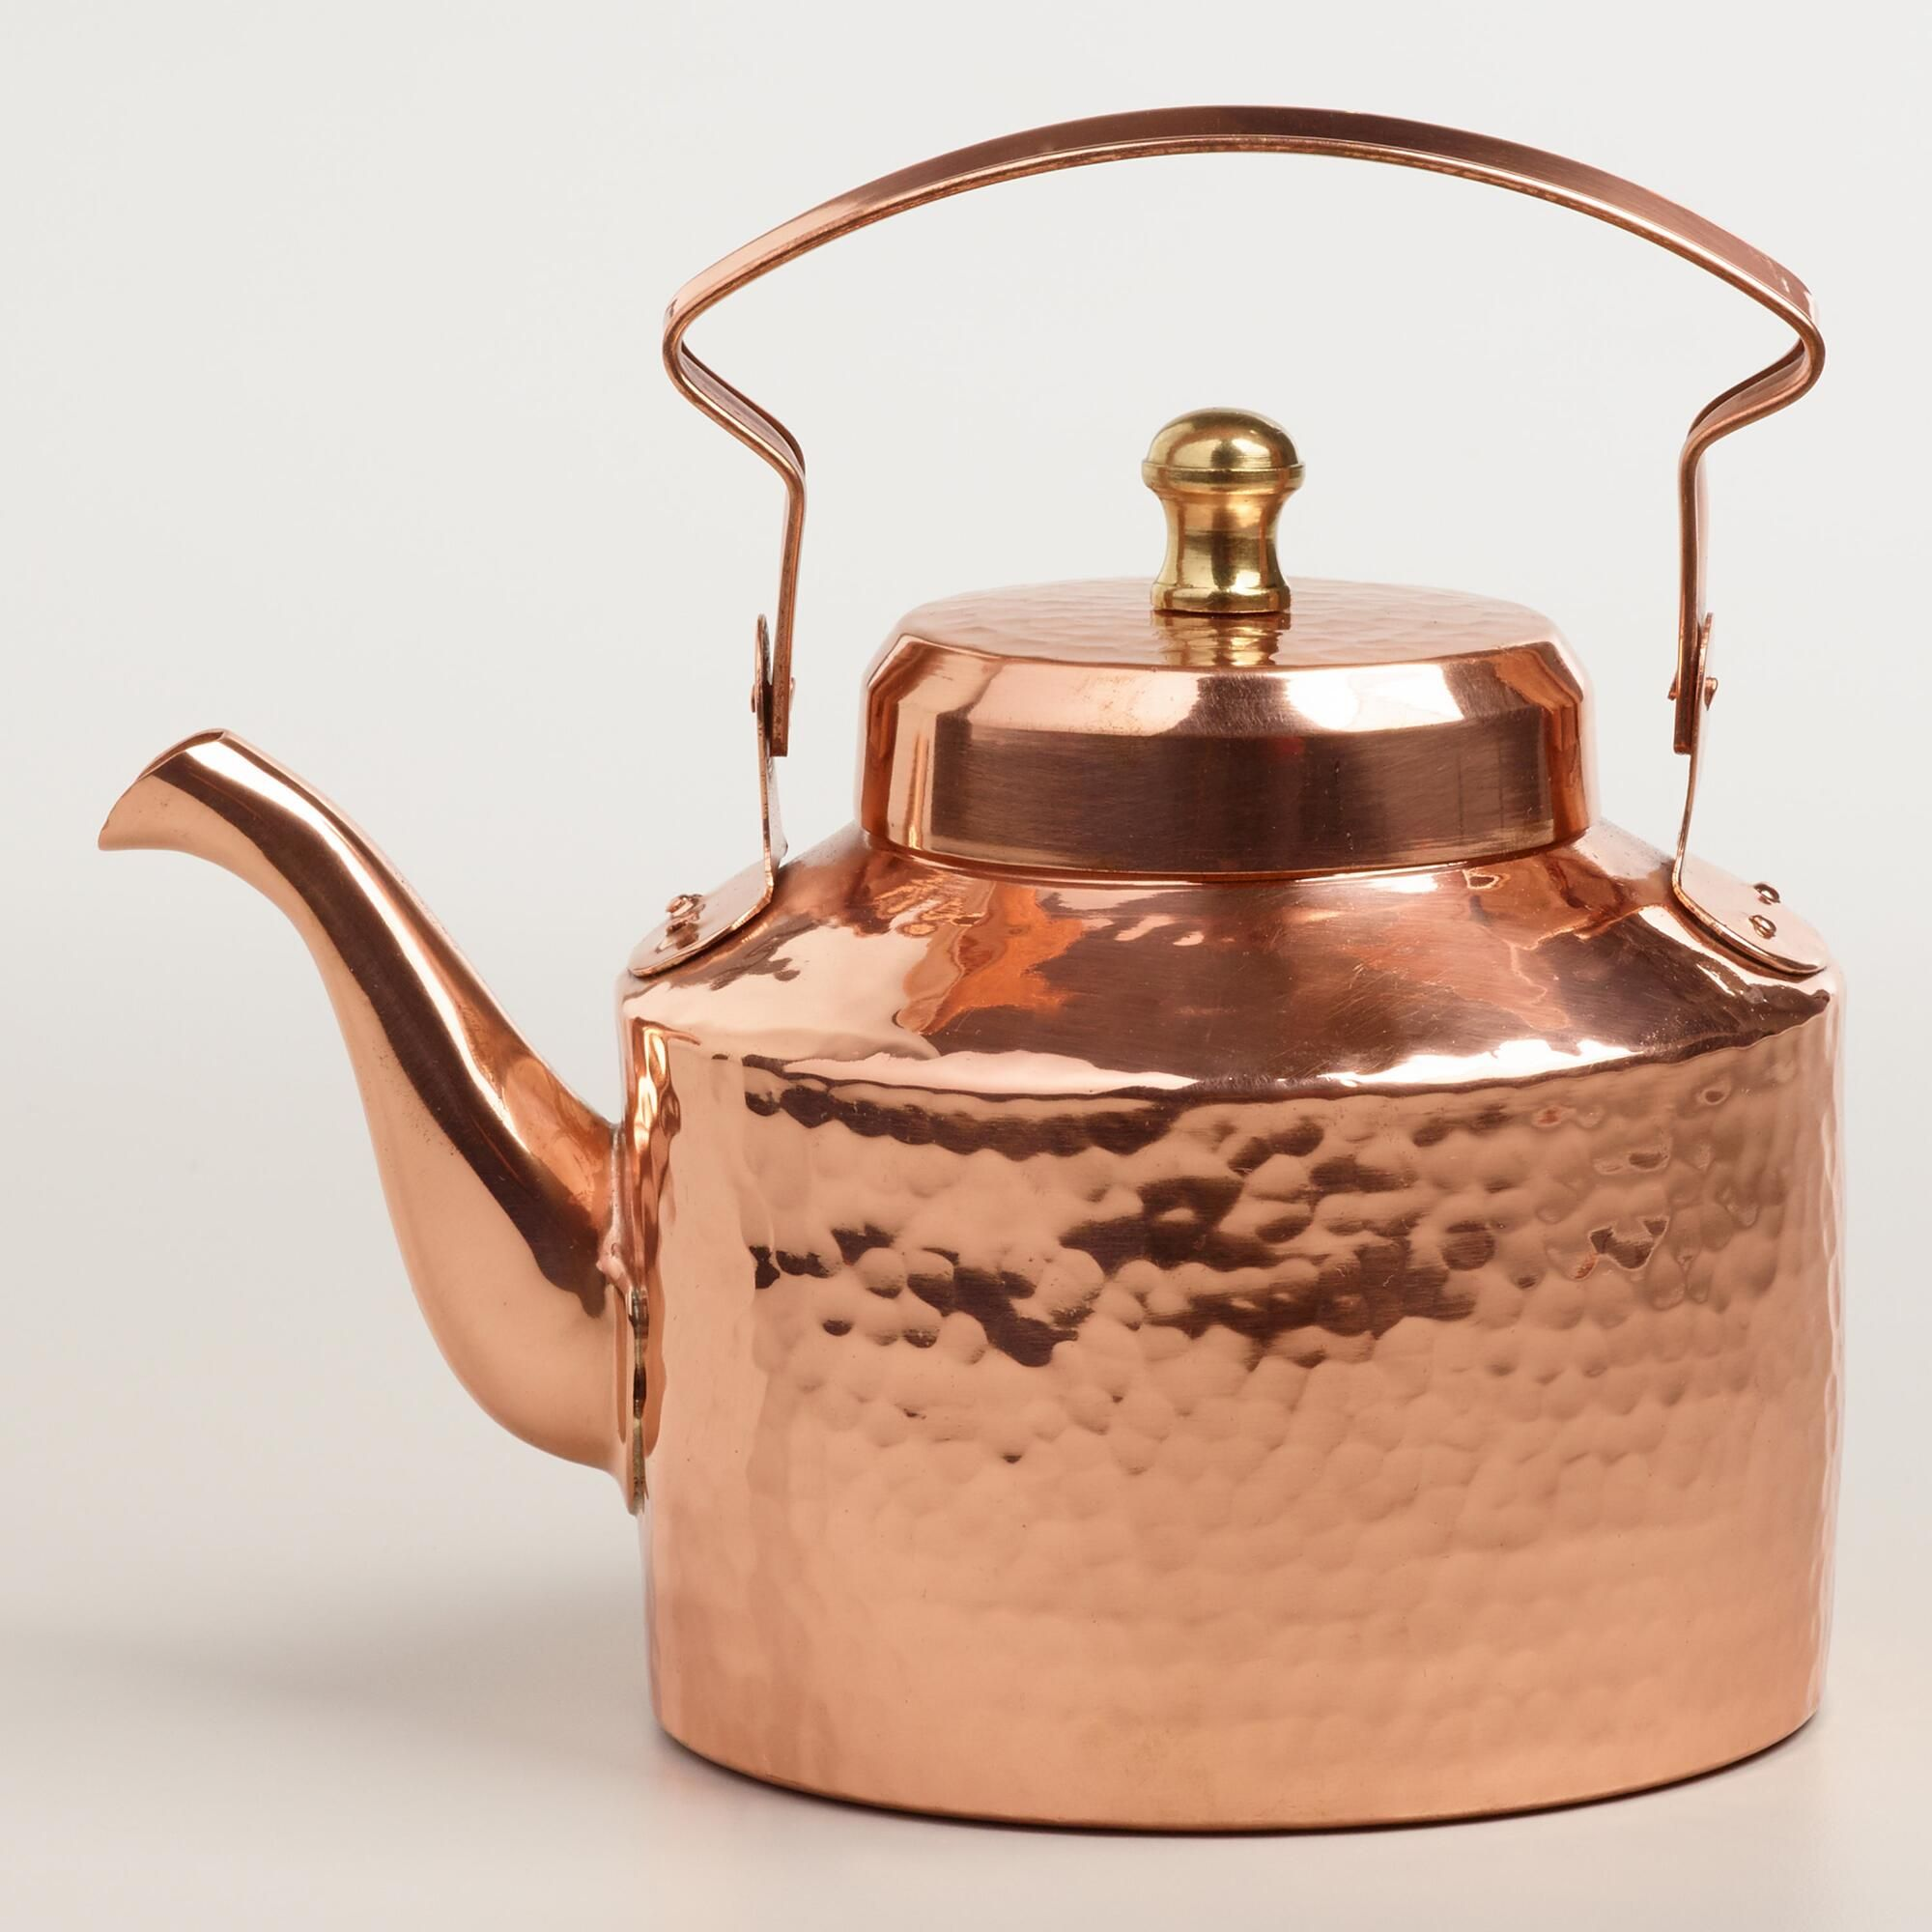 Crafted in India of solid copper for efficient heat